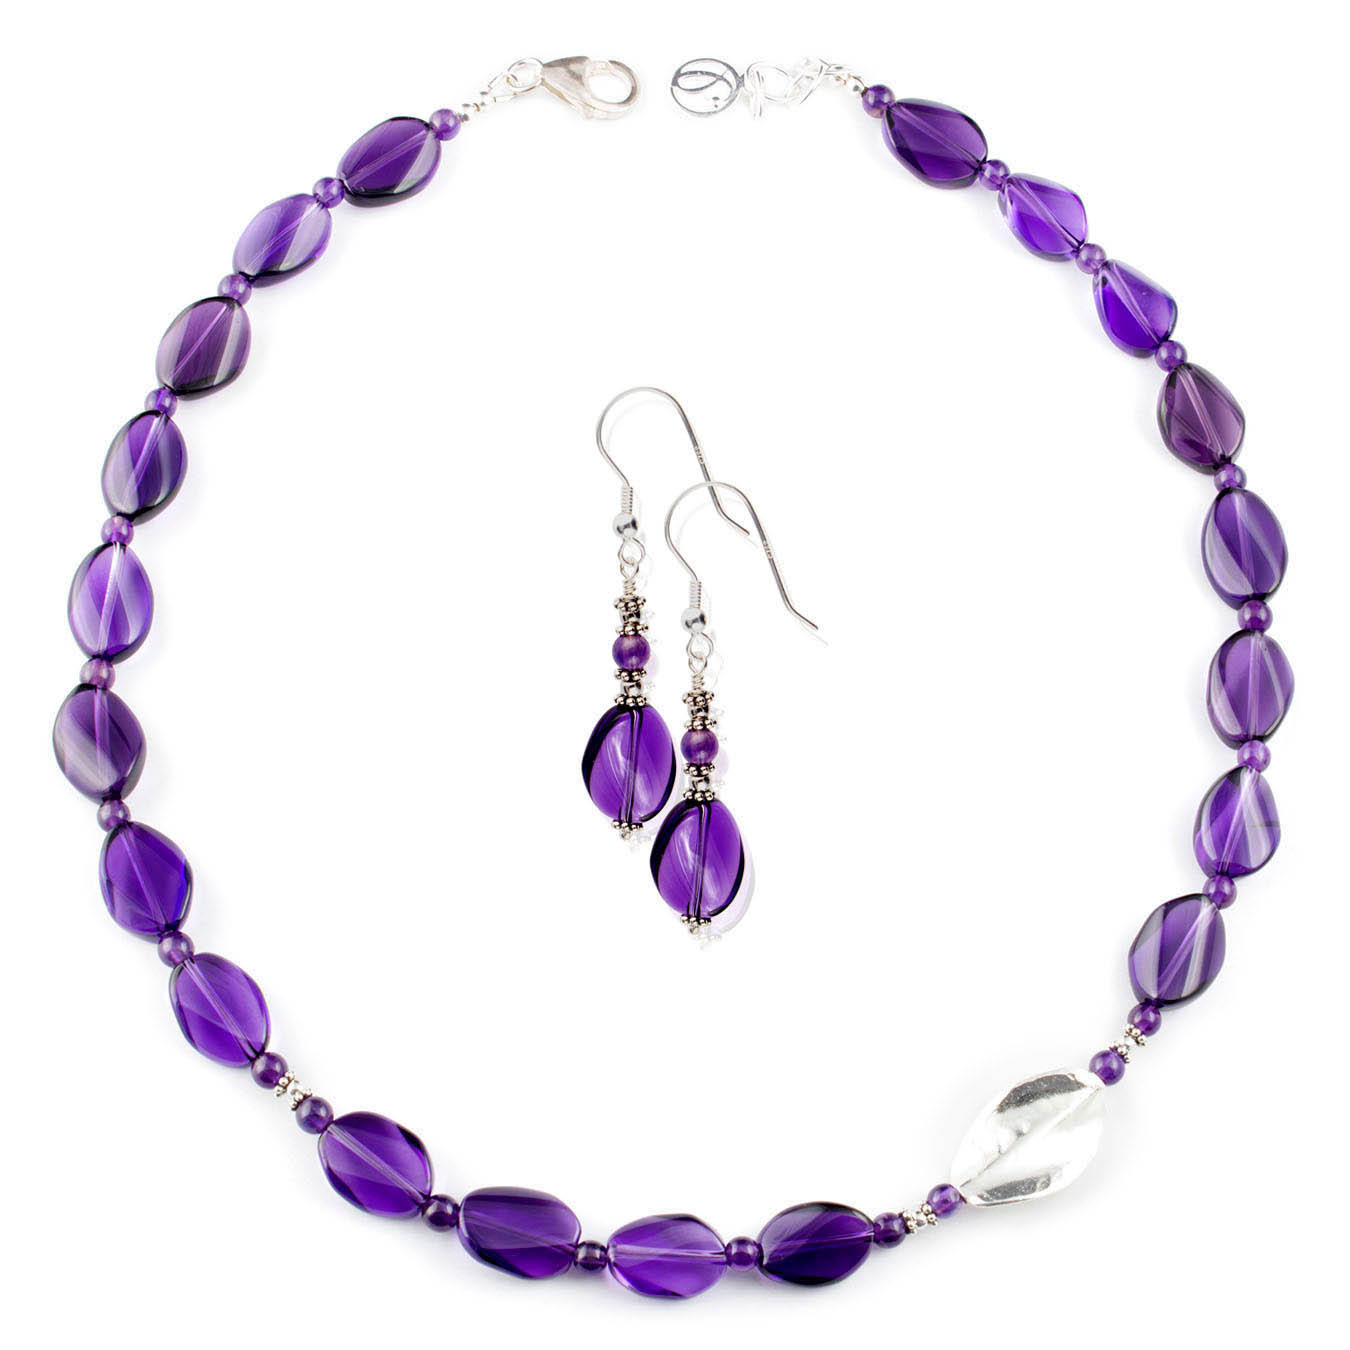 Necklace set made with faceted amethyst and Karen Hill silver bead